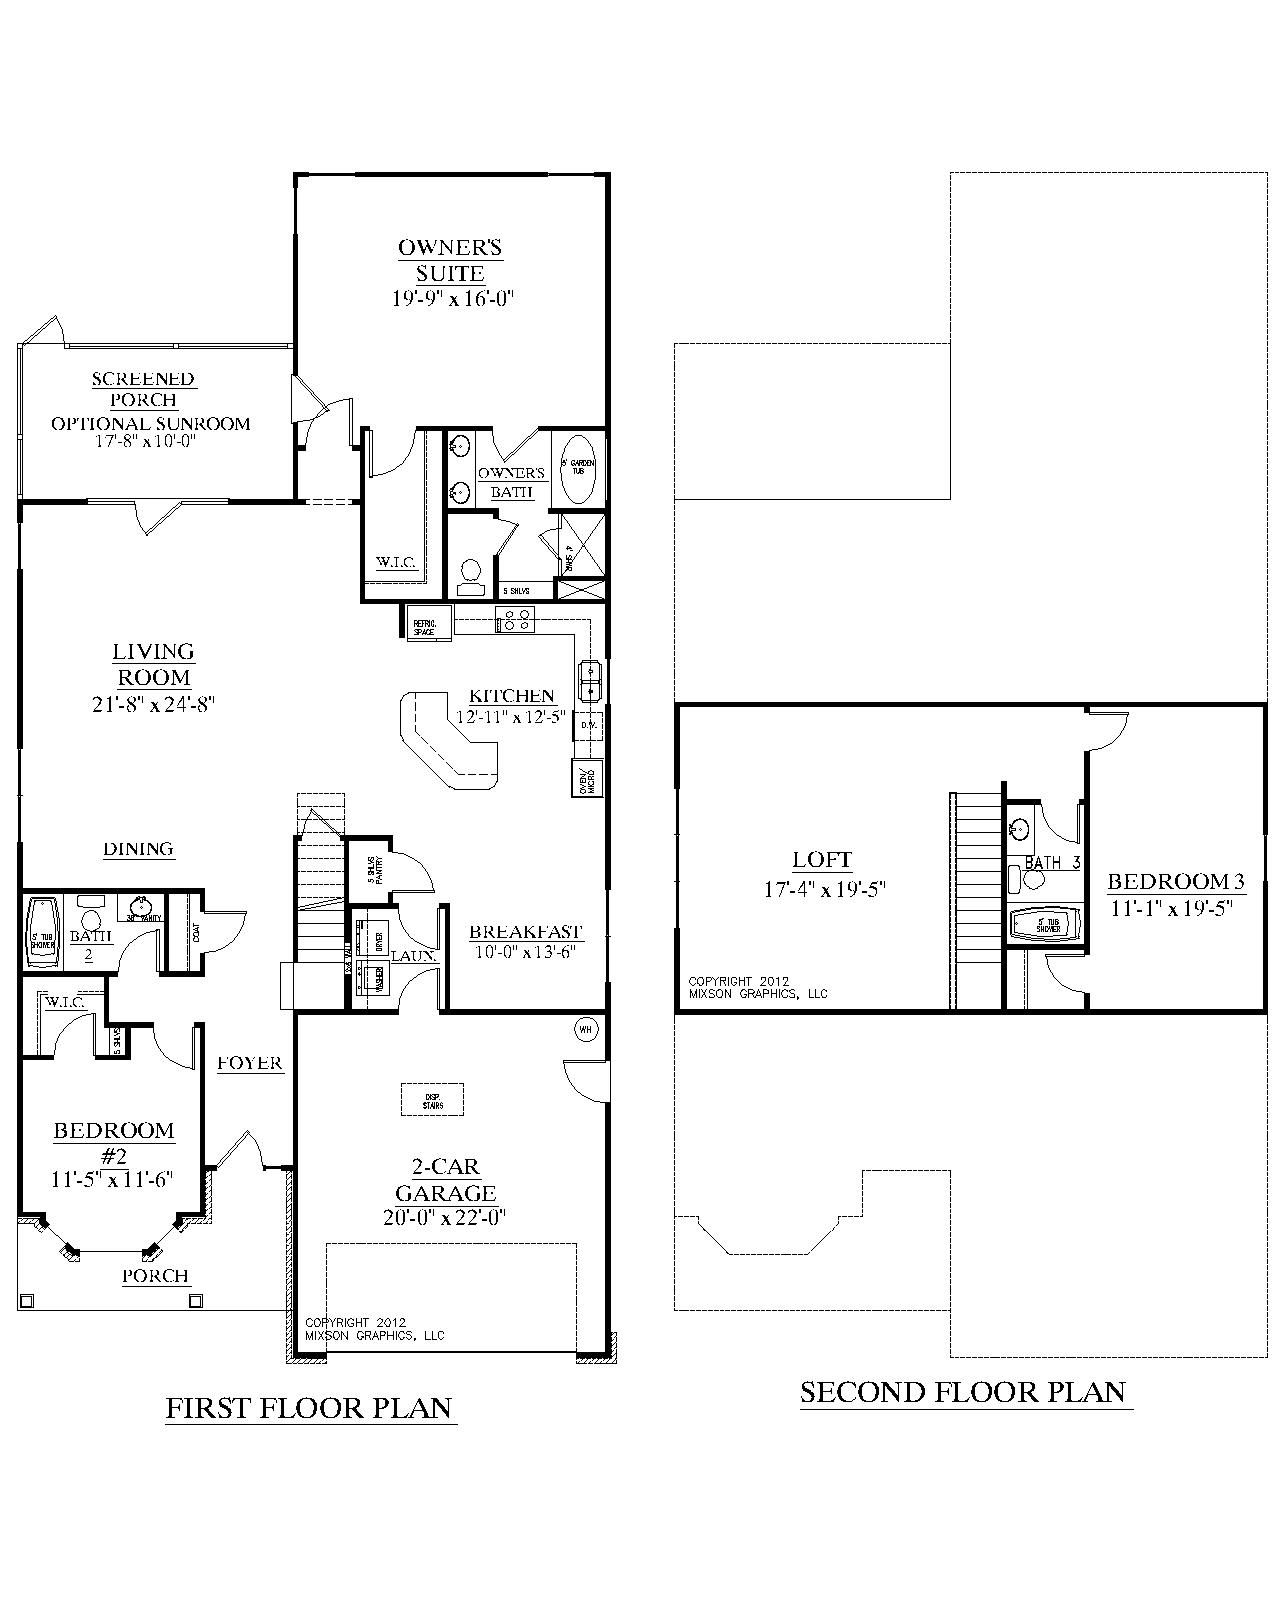 Southern Heritage Home Designs House Plan 2632 C The Azalea C Two Story House Plans Beautiful House Plans Bedroom House Plans